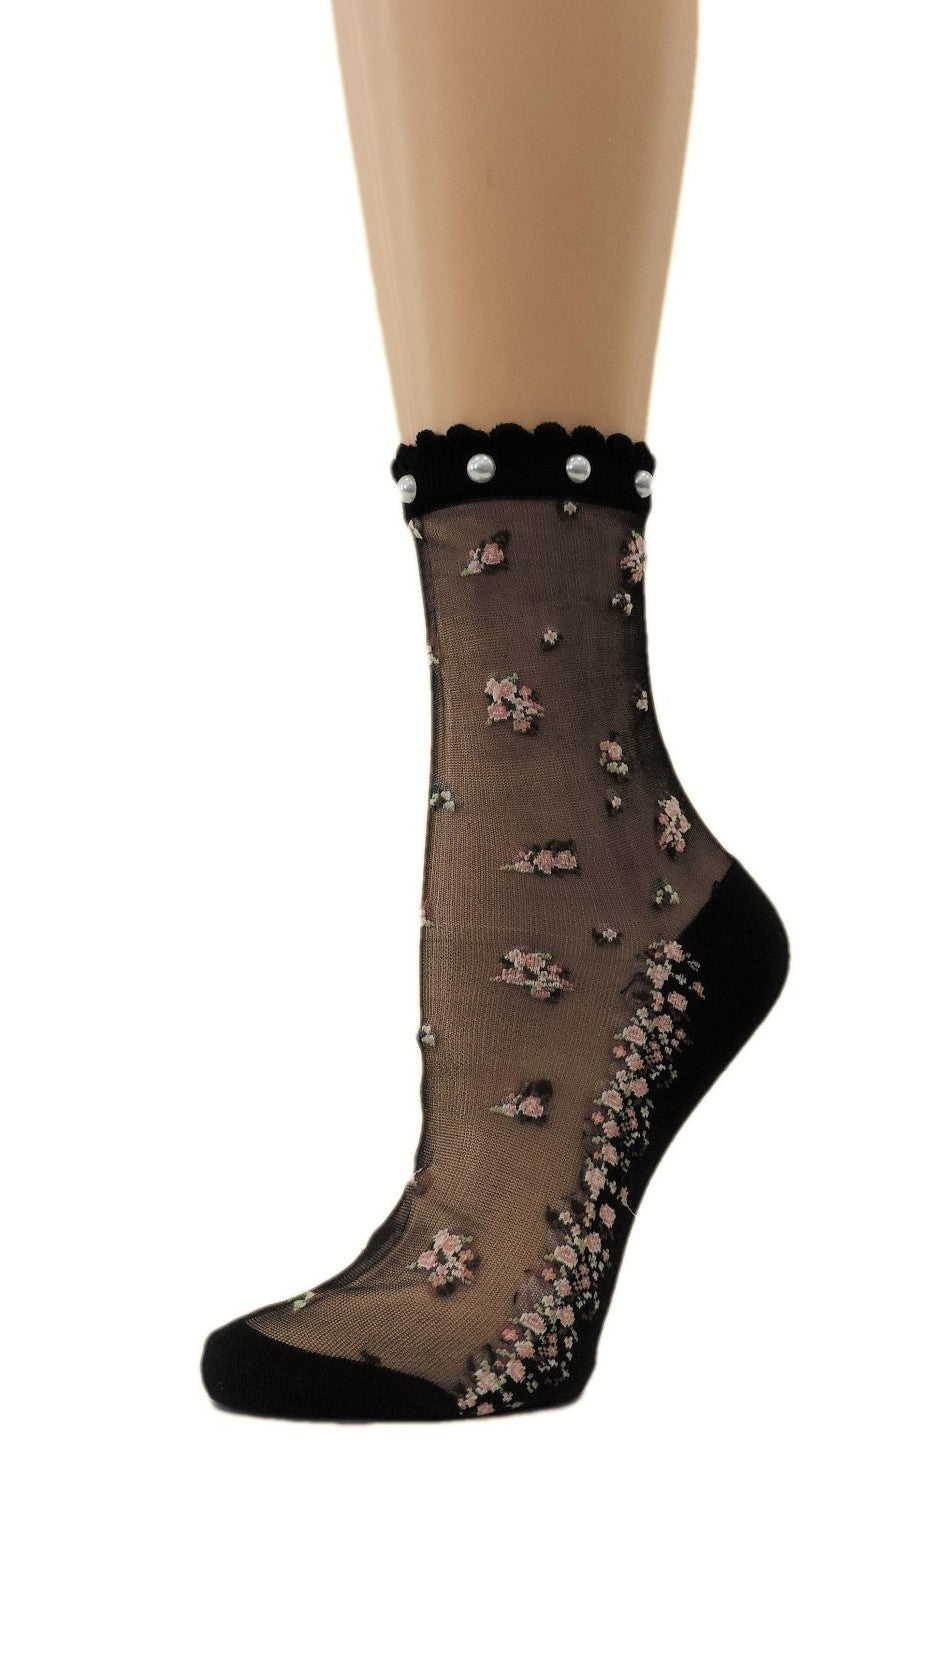 Mini Pink Floral Custom Sheer Socks with beads - Global Trendz Fashion®